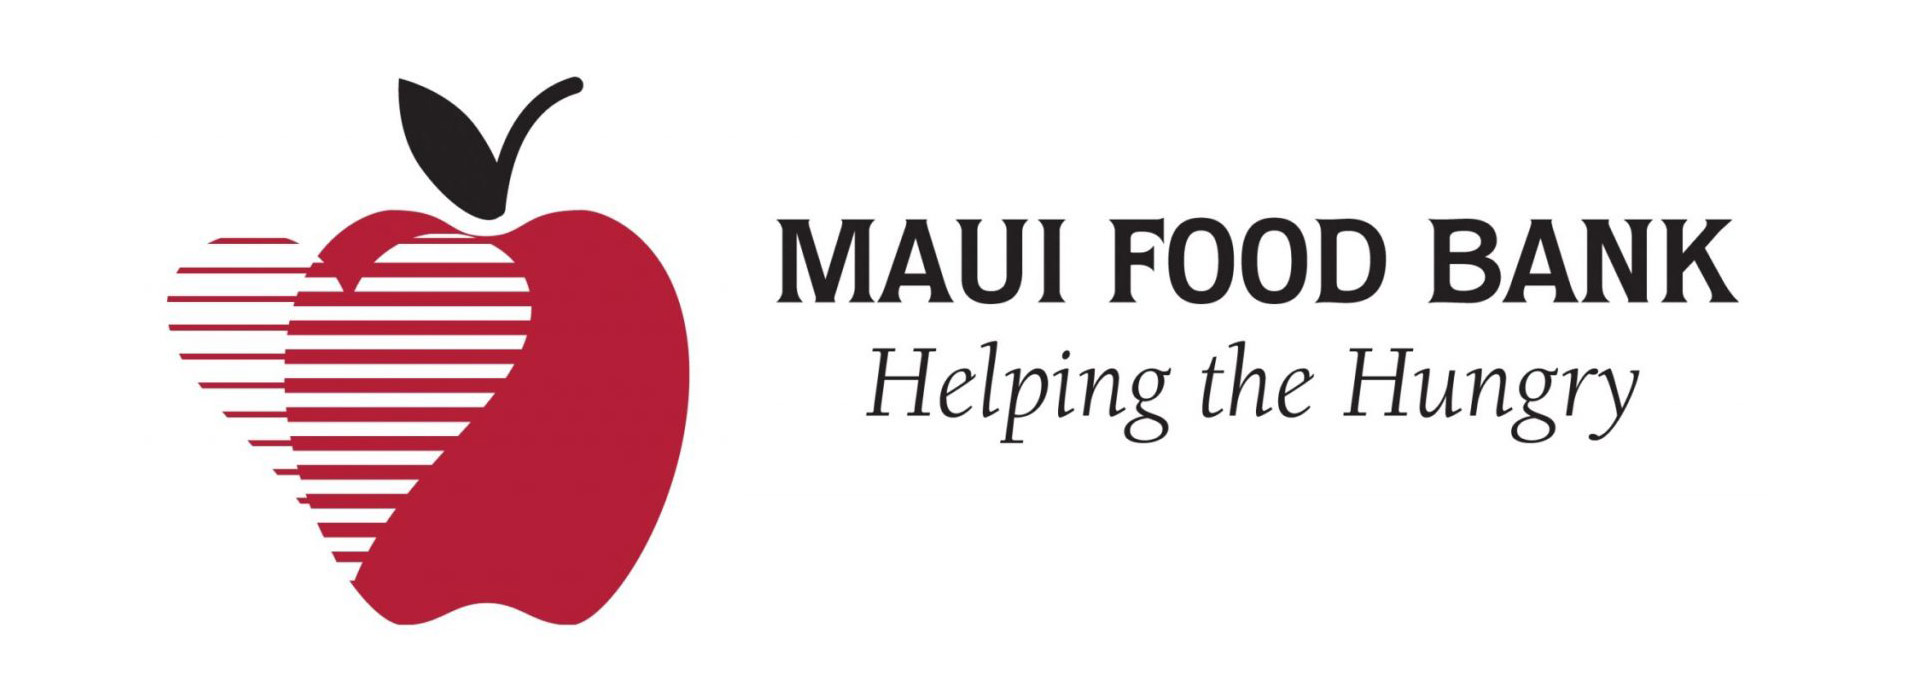 Maui Food Bank Pics